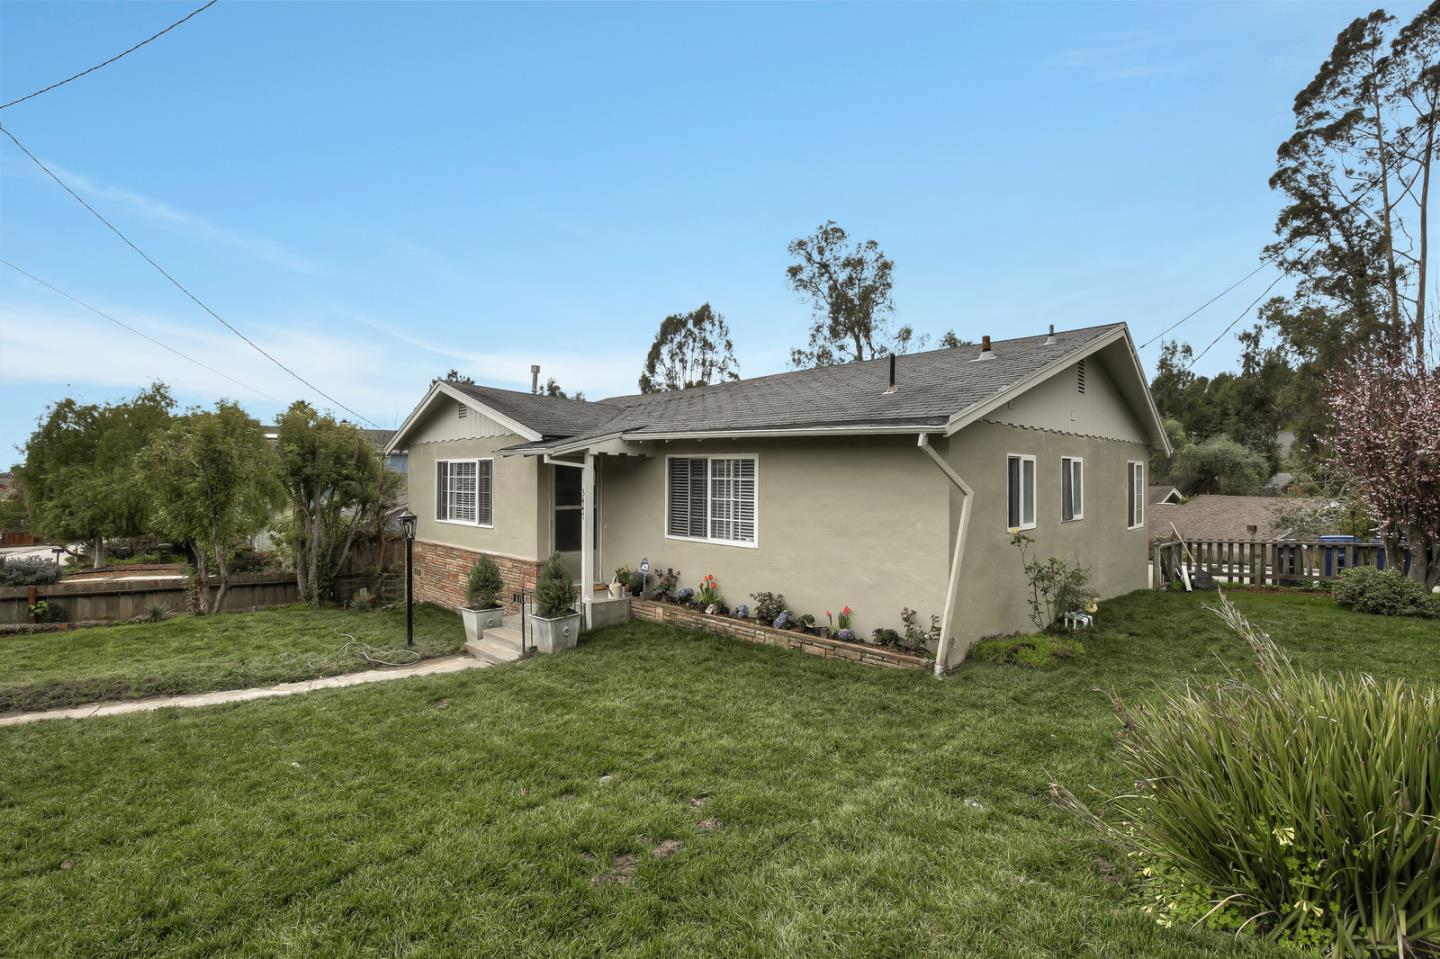 Single level home on a corner lot in a great neighborhood in Soquel!  Sunny spot with large fenced yard and off street parking.  The home has hardwood floors and double pane windows.  The kitchen has been updated with marble counter tops and newer cabinets and has a breakfast bar.  Master bedroom with bathtub.  There is a family room and a living room with fireplaces.  This is a quiet location yet close to town and amenities.